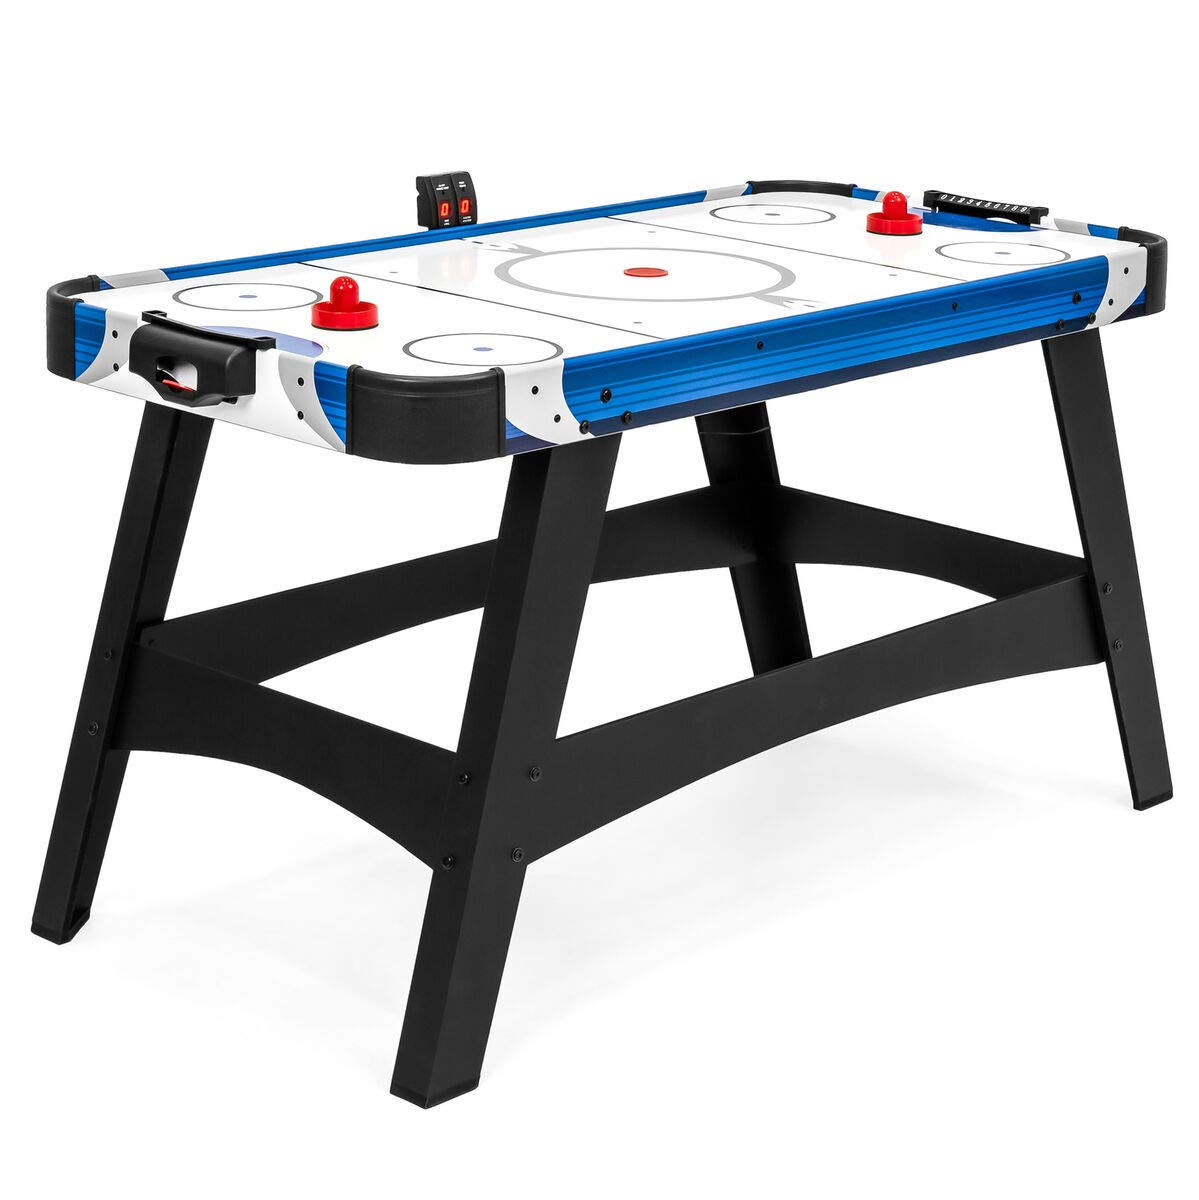 54in Air Powered Hockey Table w/ 2 Puck, 2 Paddles, LED Score Board, Best Children's Toys 2019